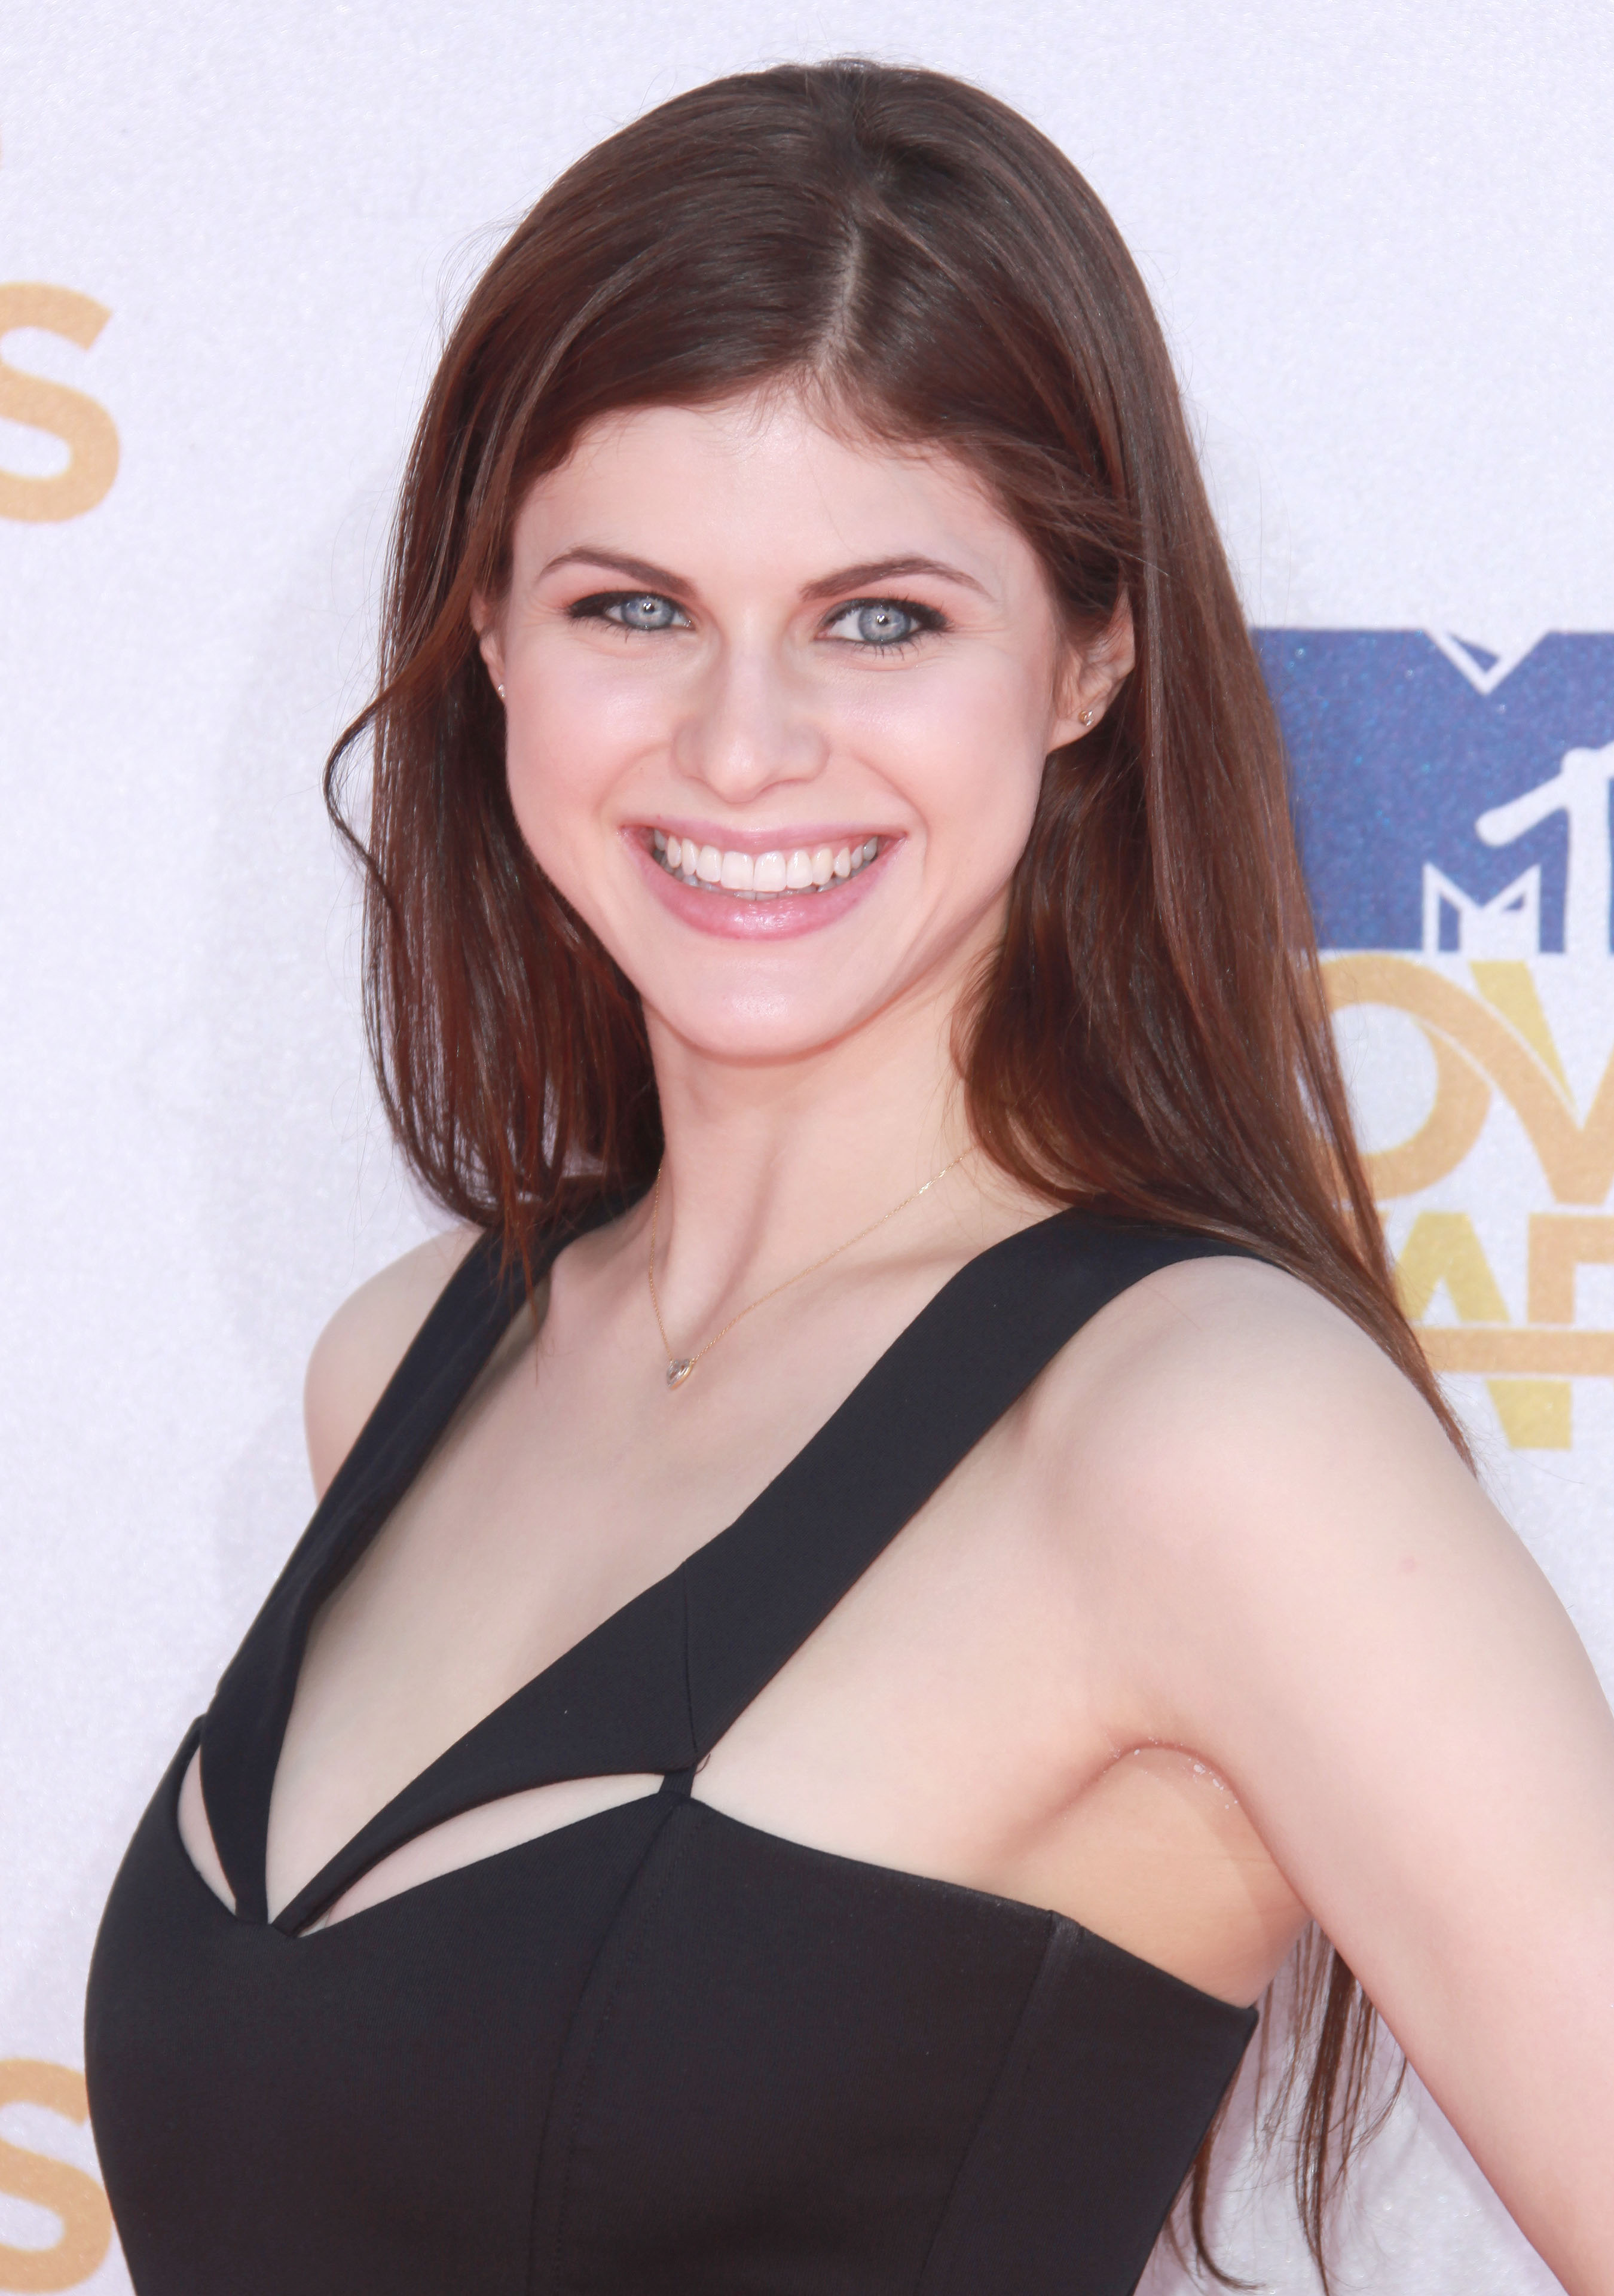 Alexandra daddario how to date me - 1 part 10